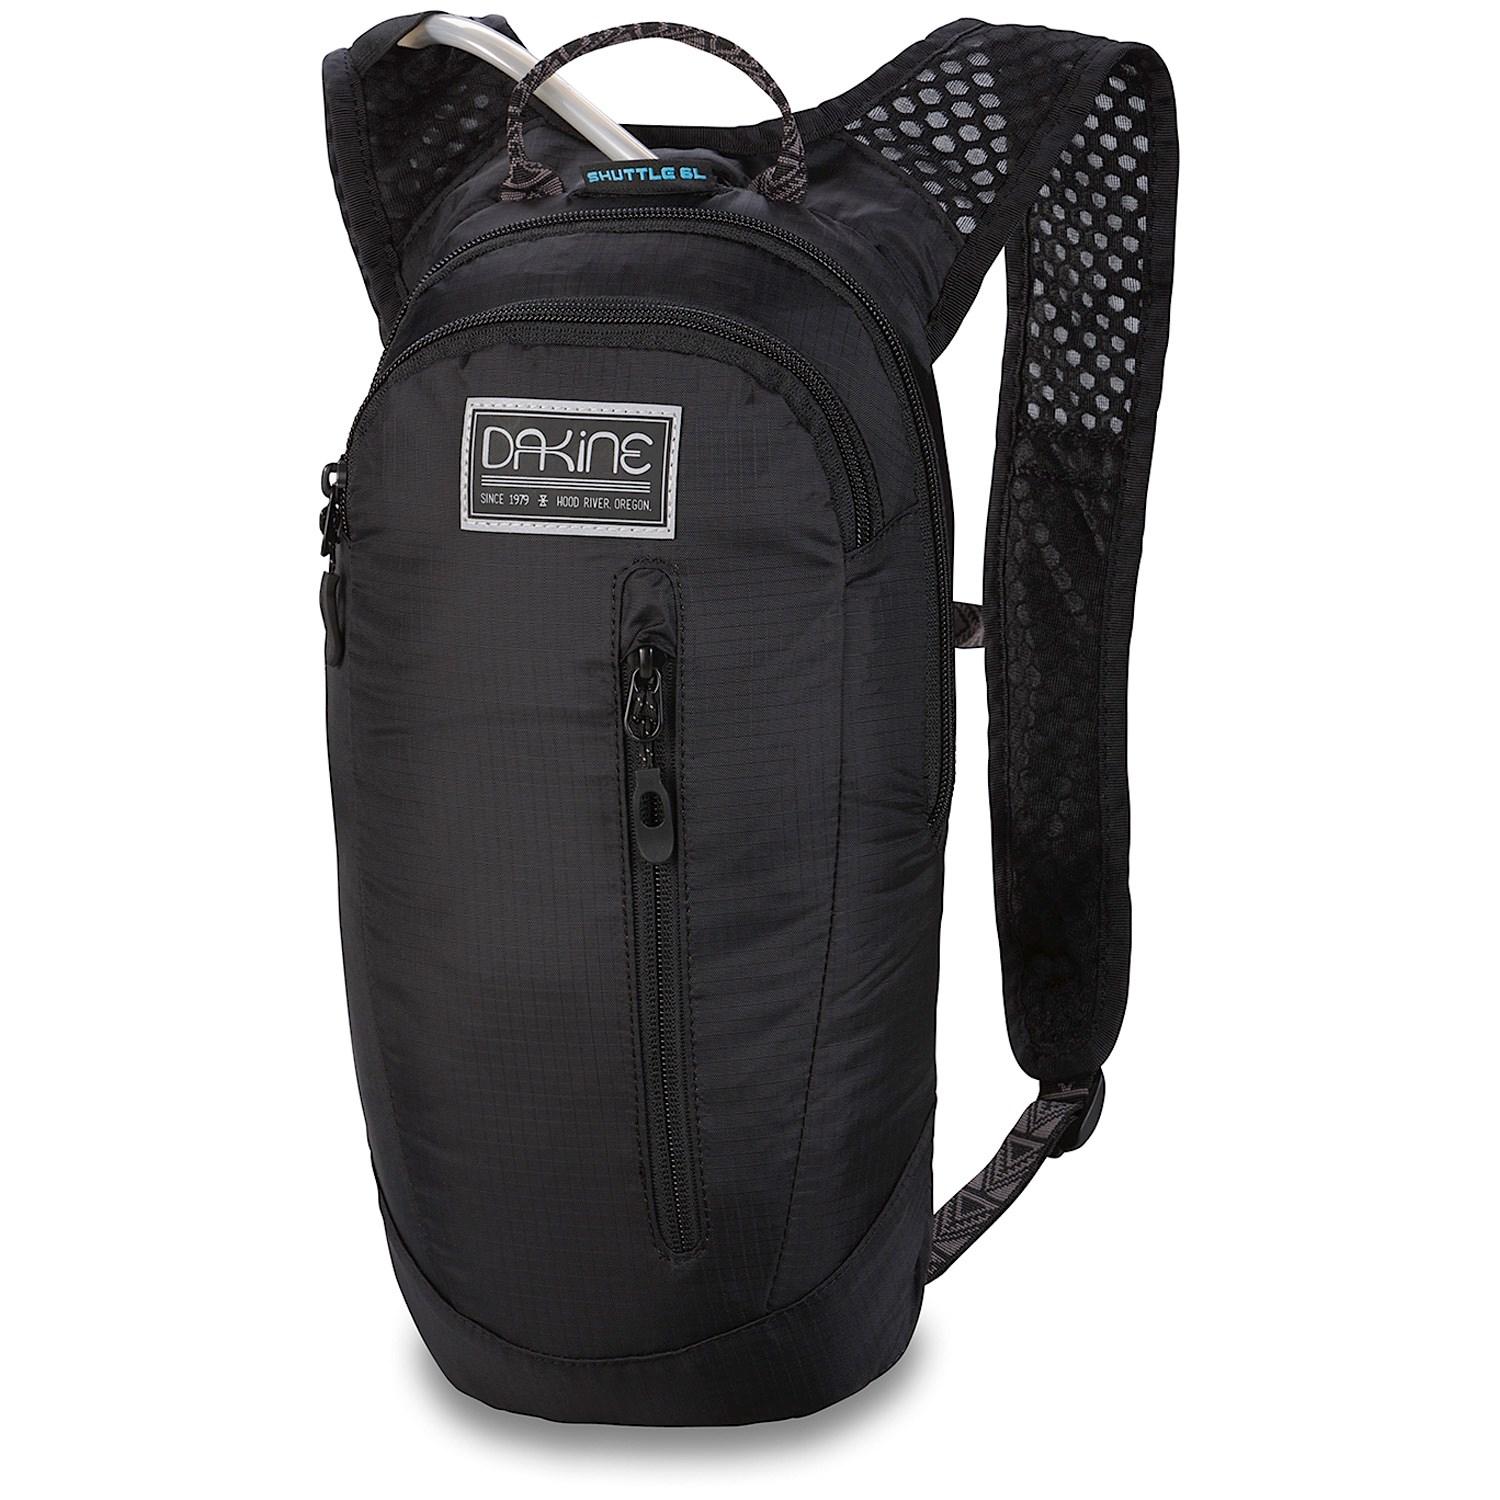 Dakine Shuttle 6L Hydration Pack - Women's | evo